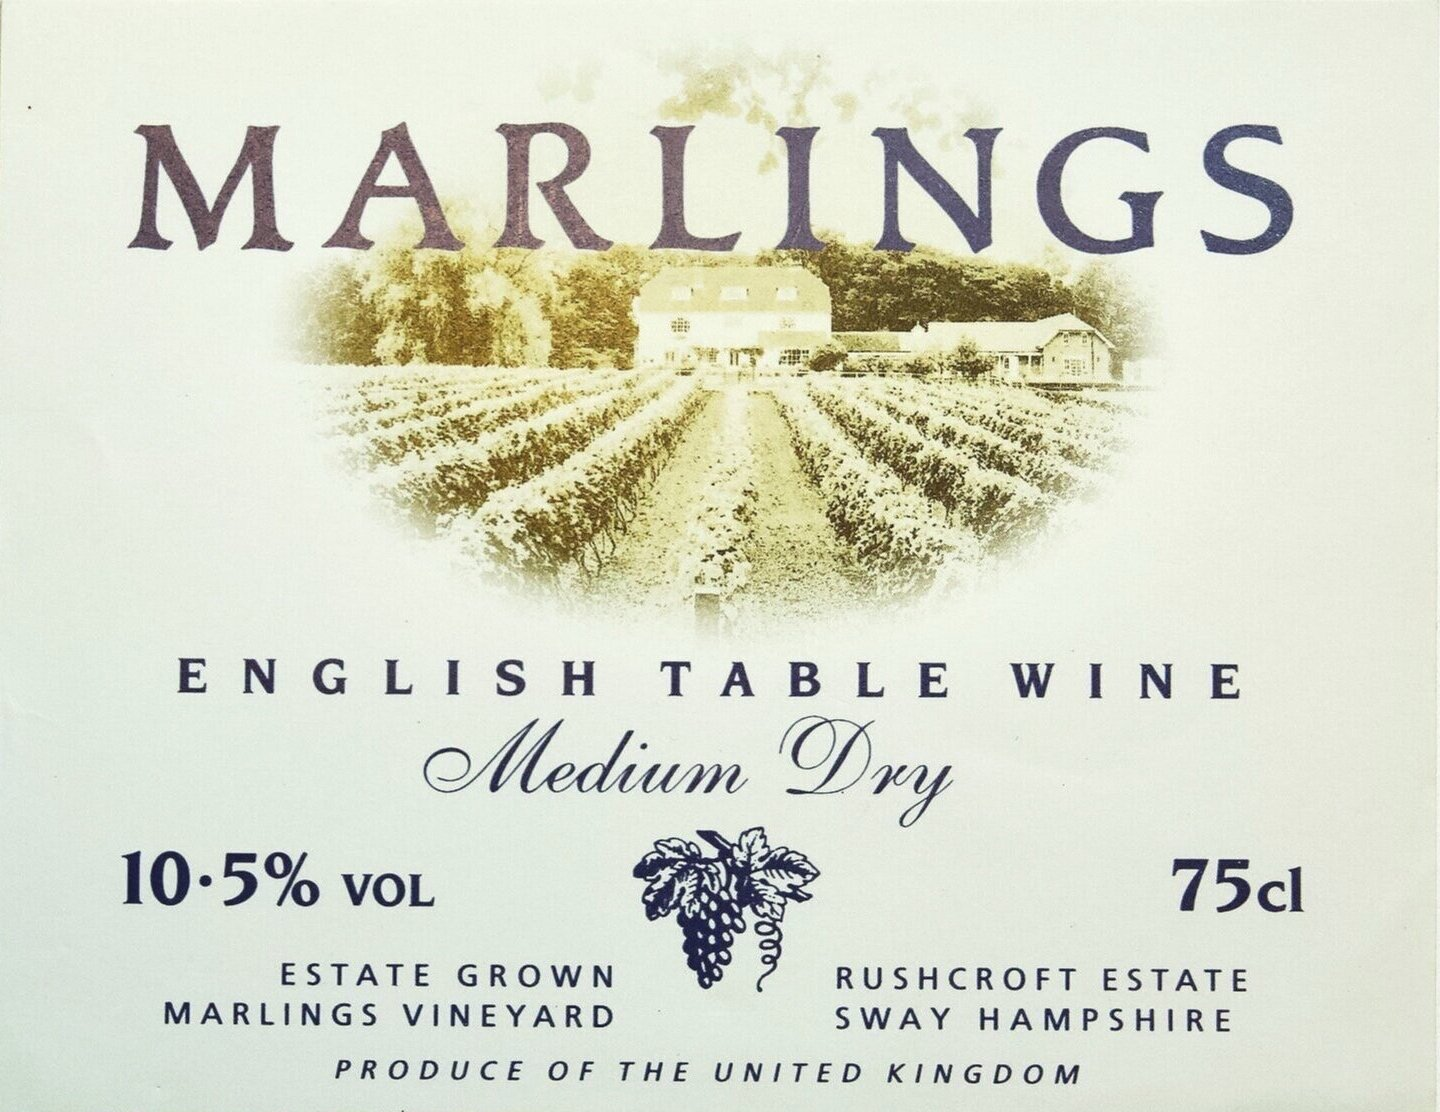 The original Marlings English Table Wine label